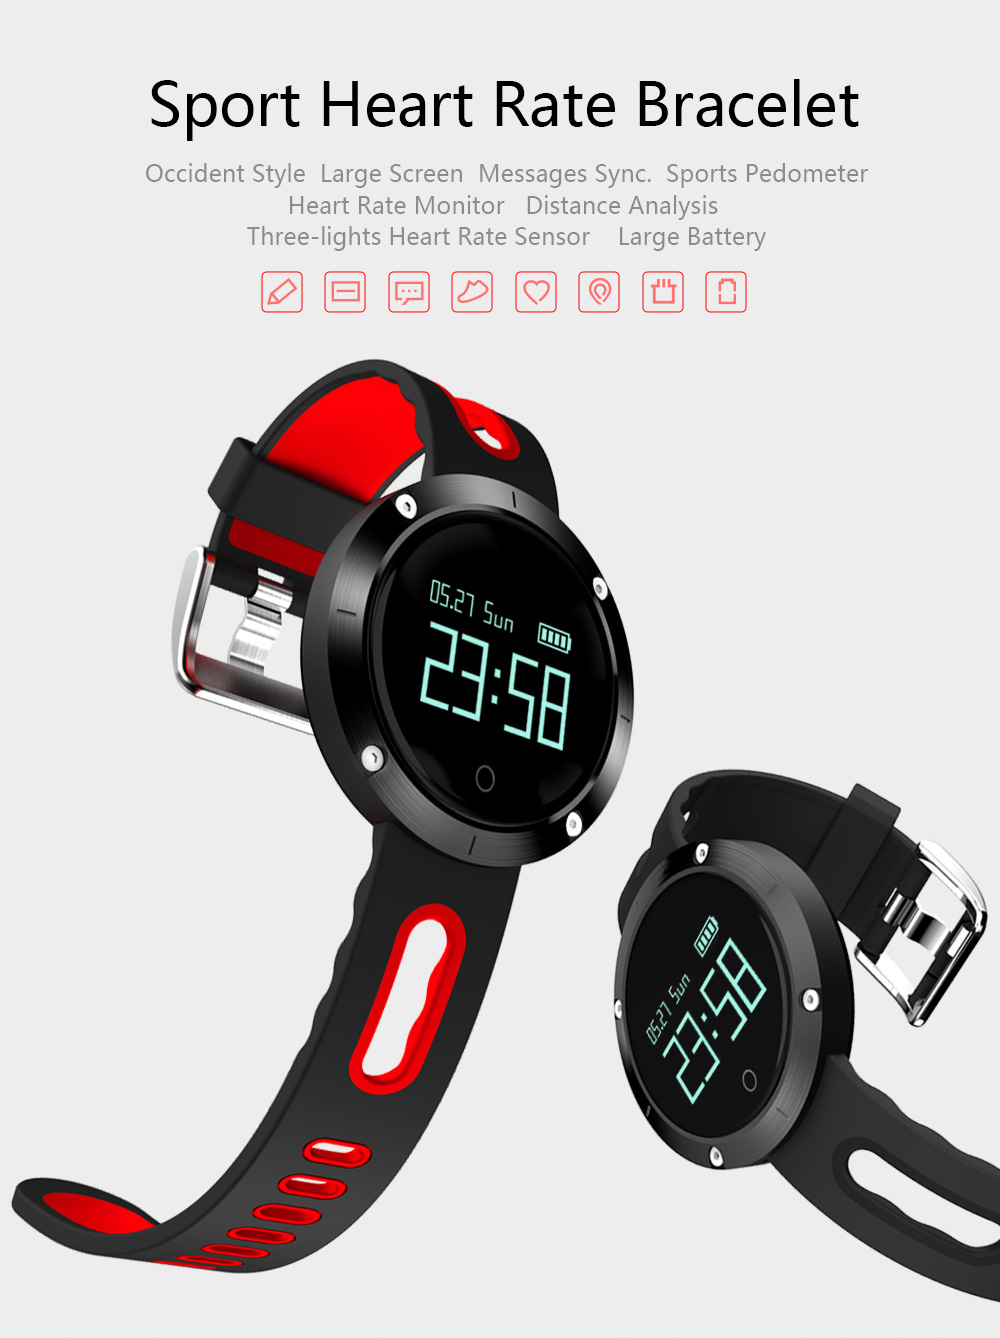 MAKIBES DM58 BLUETOOTH SPORTS HEART RATE SMART BAND WITH BLOOD PRESSURE MONITOR IP68 WATERPROOF WRISTBAND 237054 32